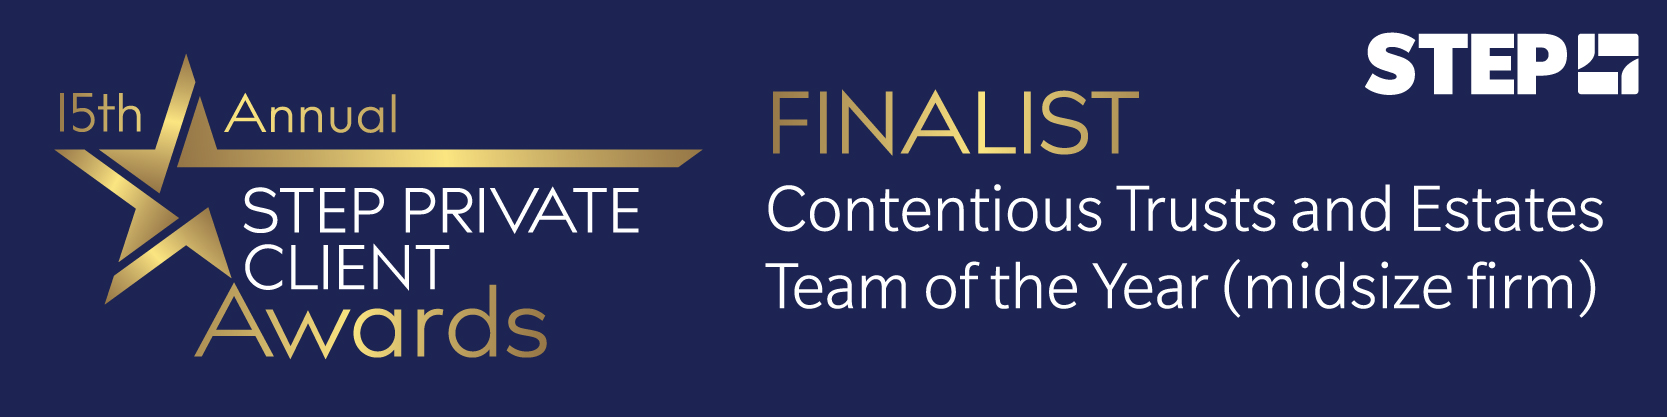 Forsters shortlisted for Contentious Trusts and Estates Team of the Year (midsize firm) at the STEP Private Client Awards 2020/21